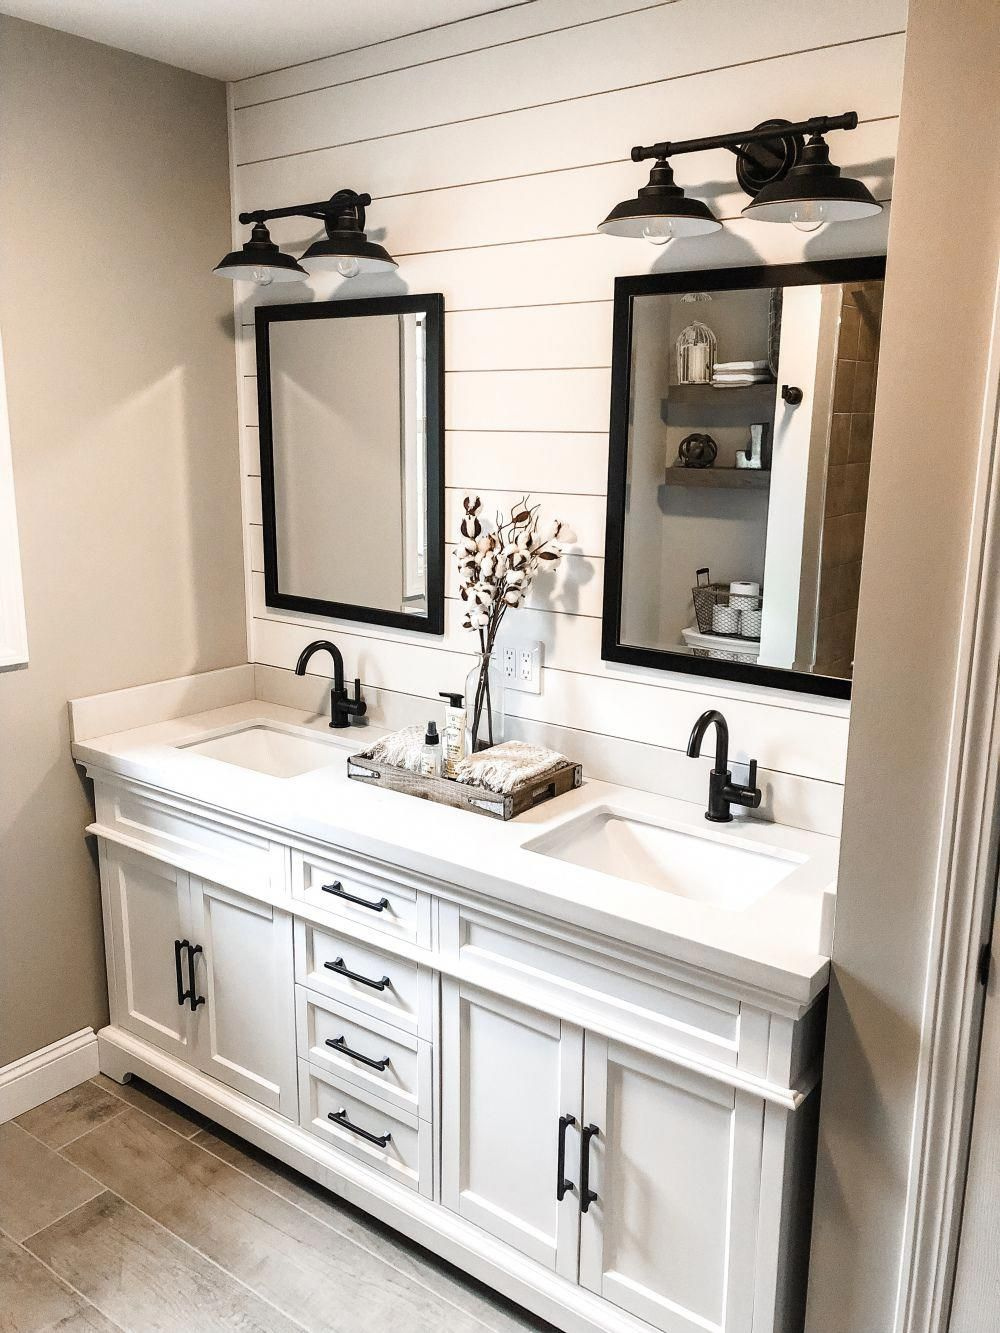 Wade Design Inc Gallery Of Work Black Cabinets Bathroom Bathroom Cabinets Designs Tan Bathroom